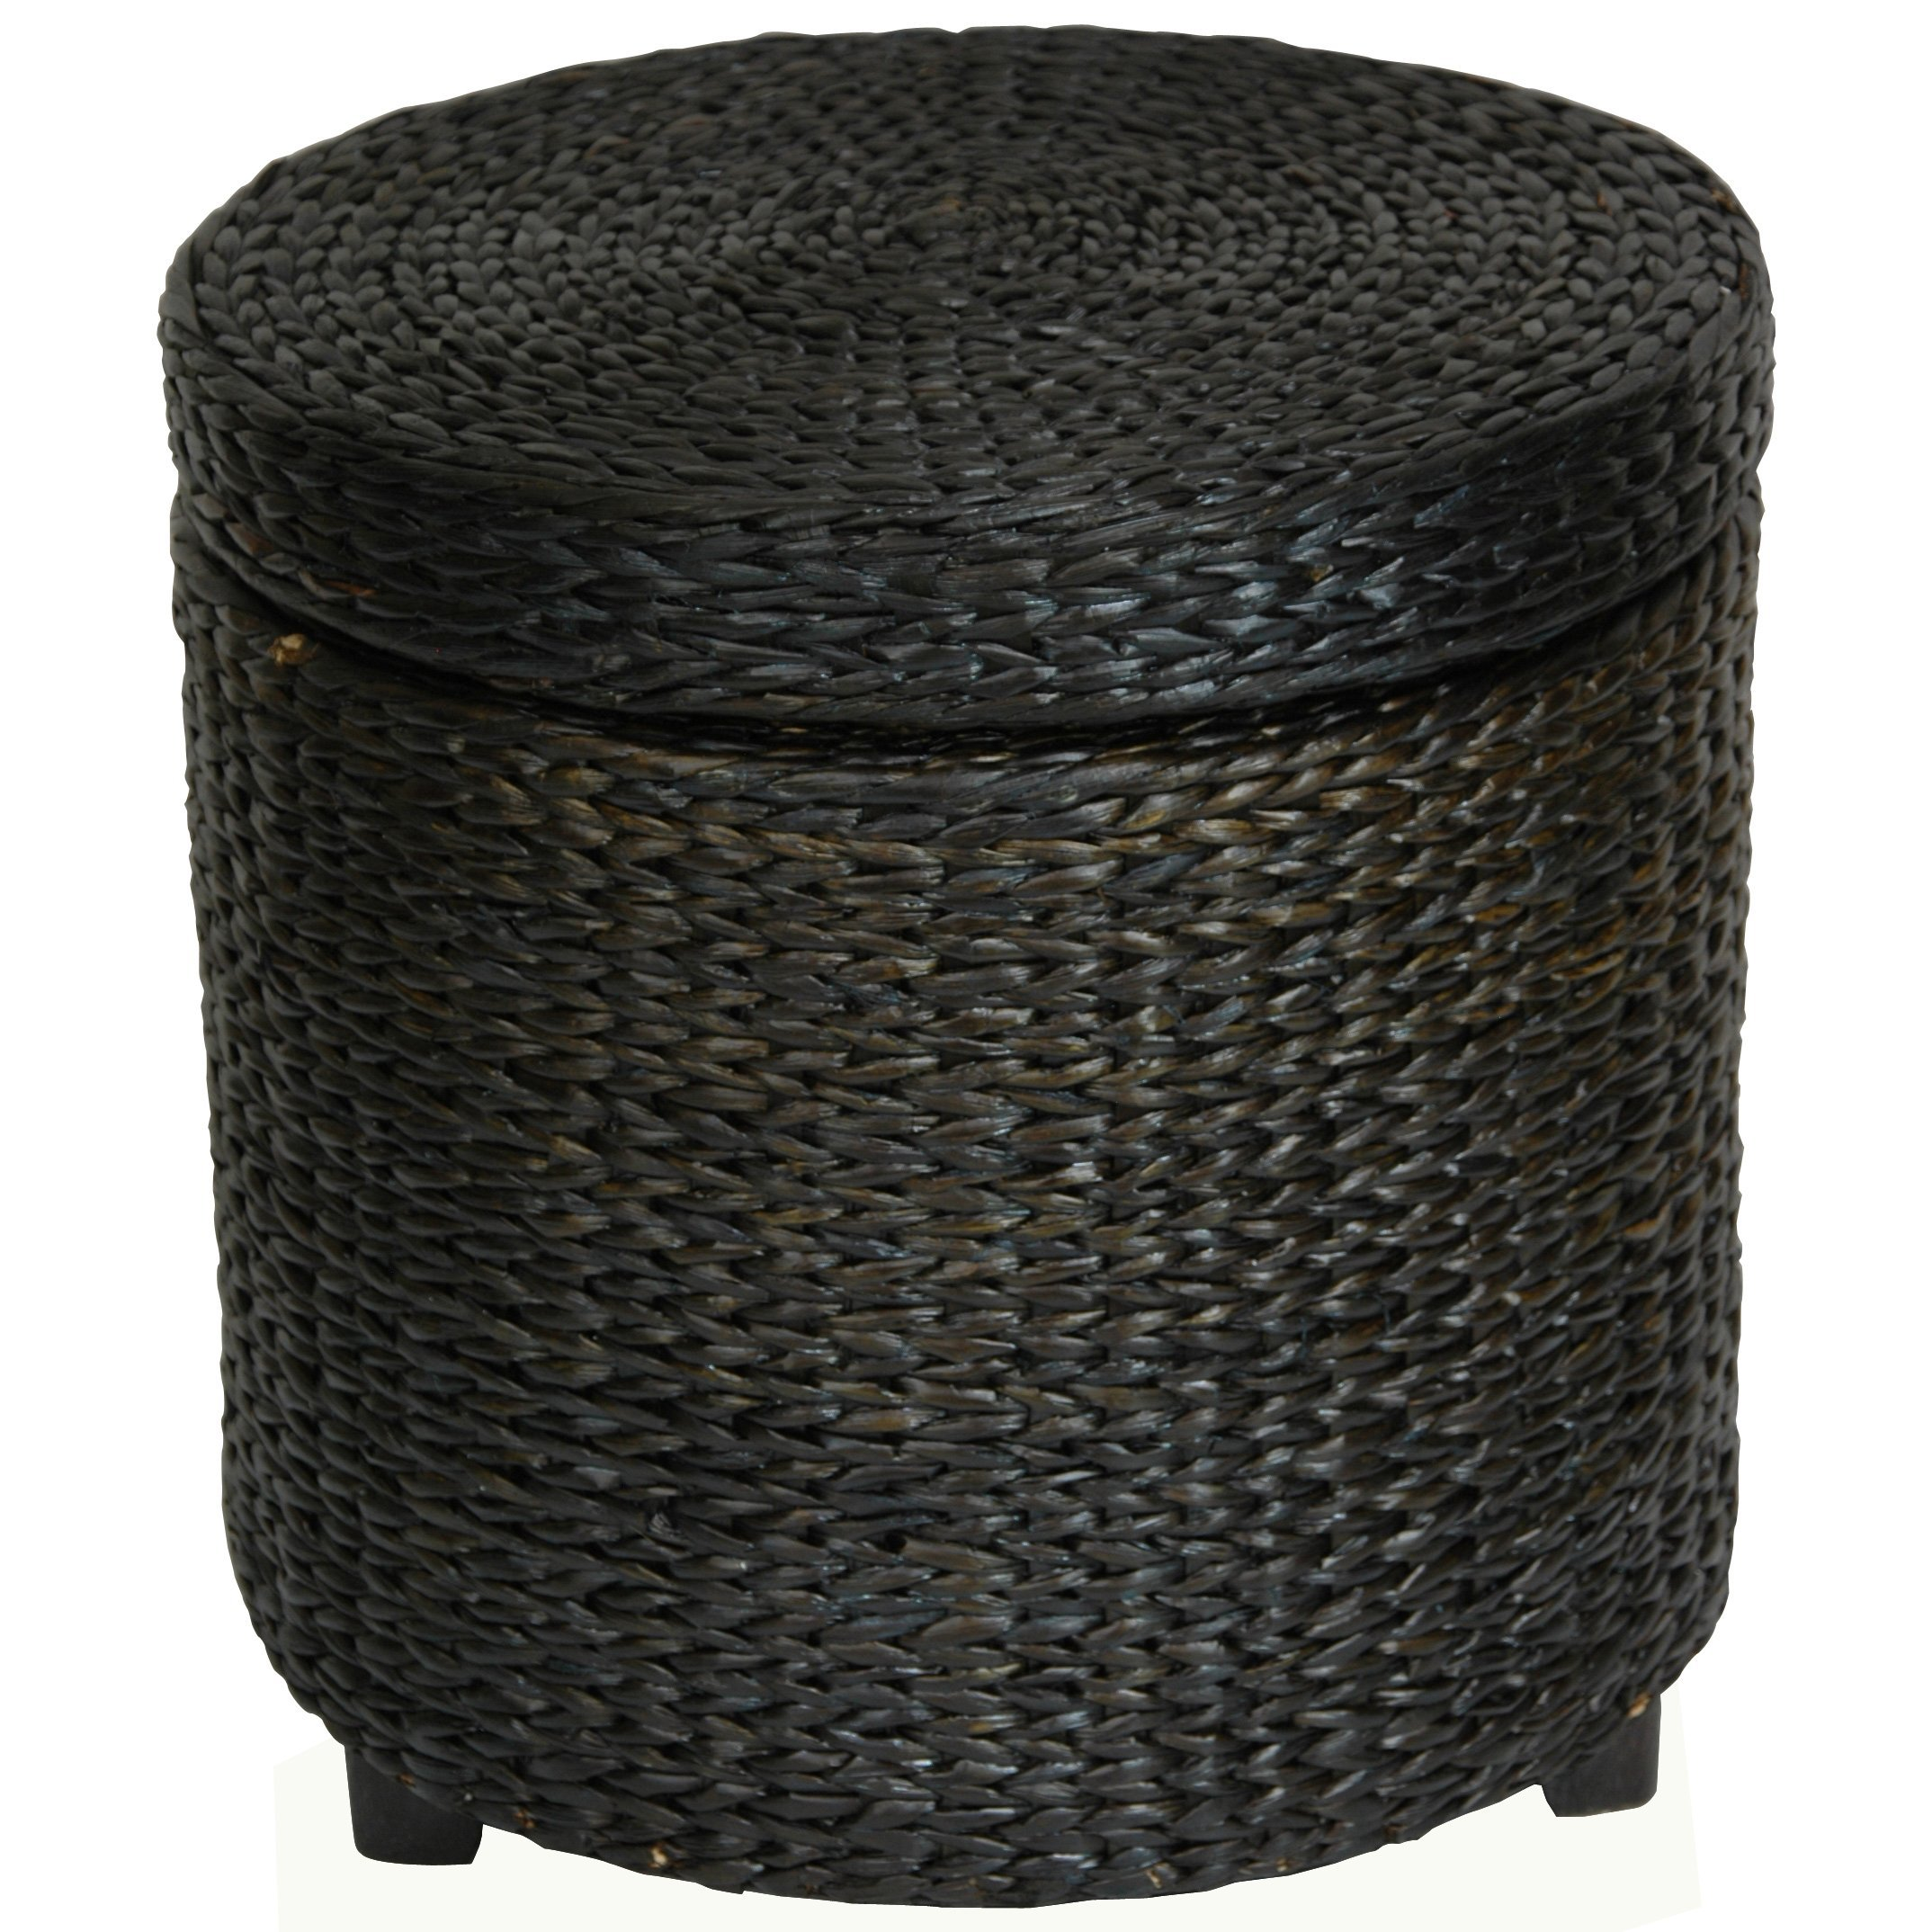 Round Wicker Coffee Table With Stools: Oriental Furniture Most Affordable Low Price End Table, 17